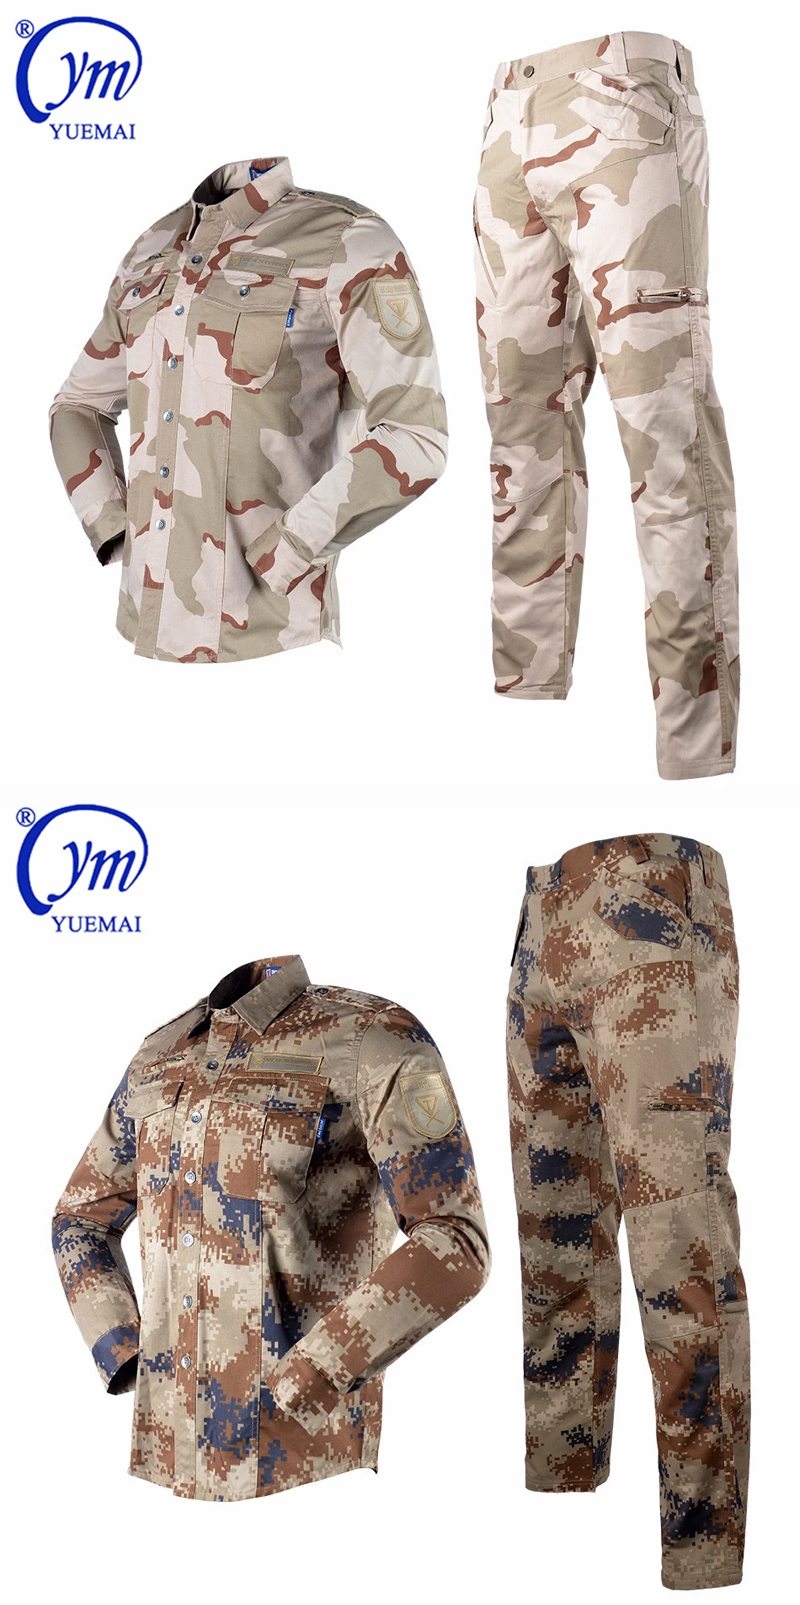 Hot sale customized ACU types army military uniforms